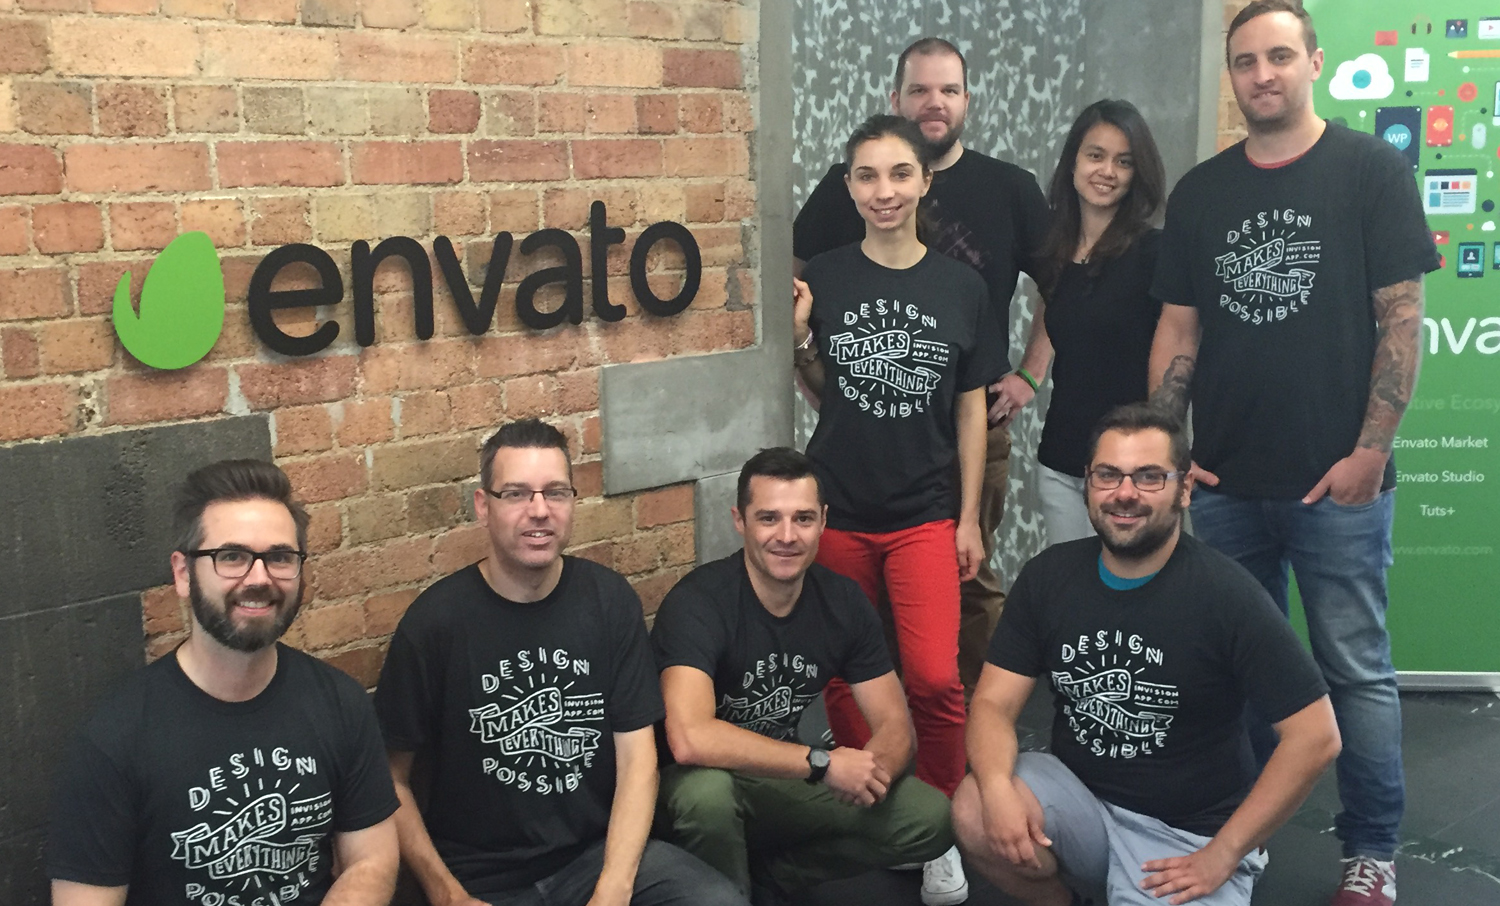 The design team at Envato